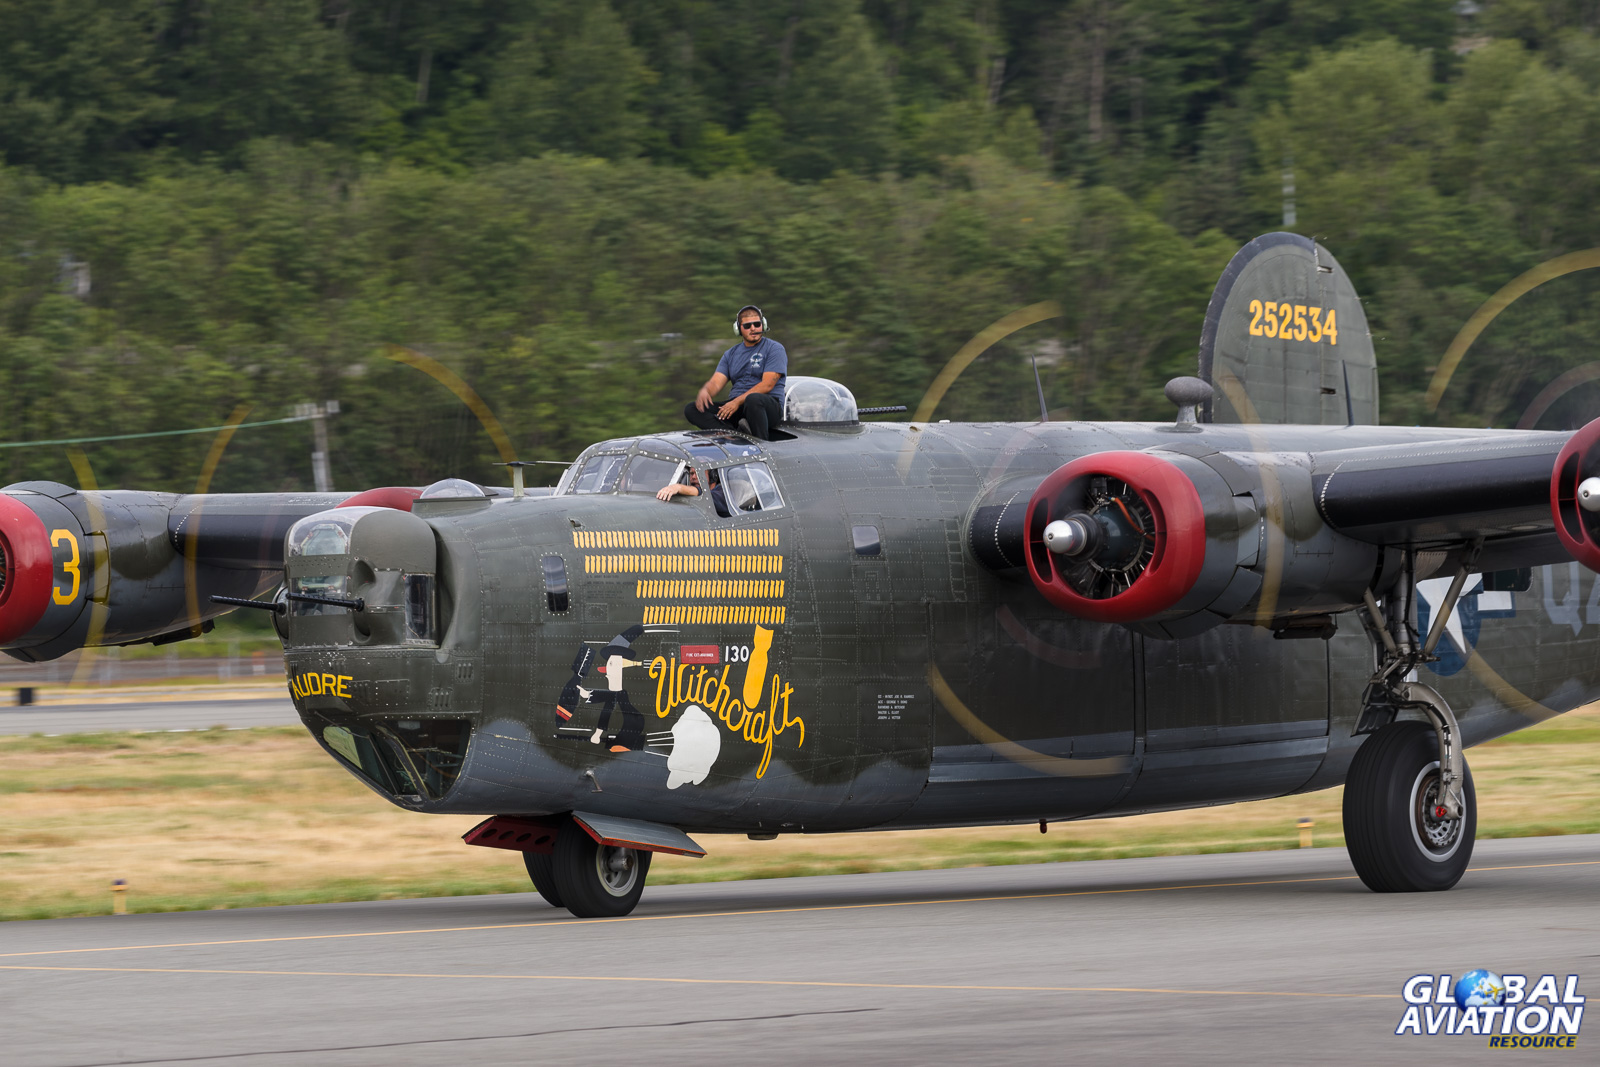 B-24 Liberator © Rob Edgcumbe - Global Aviation Resource